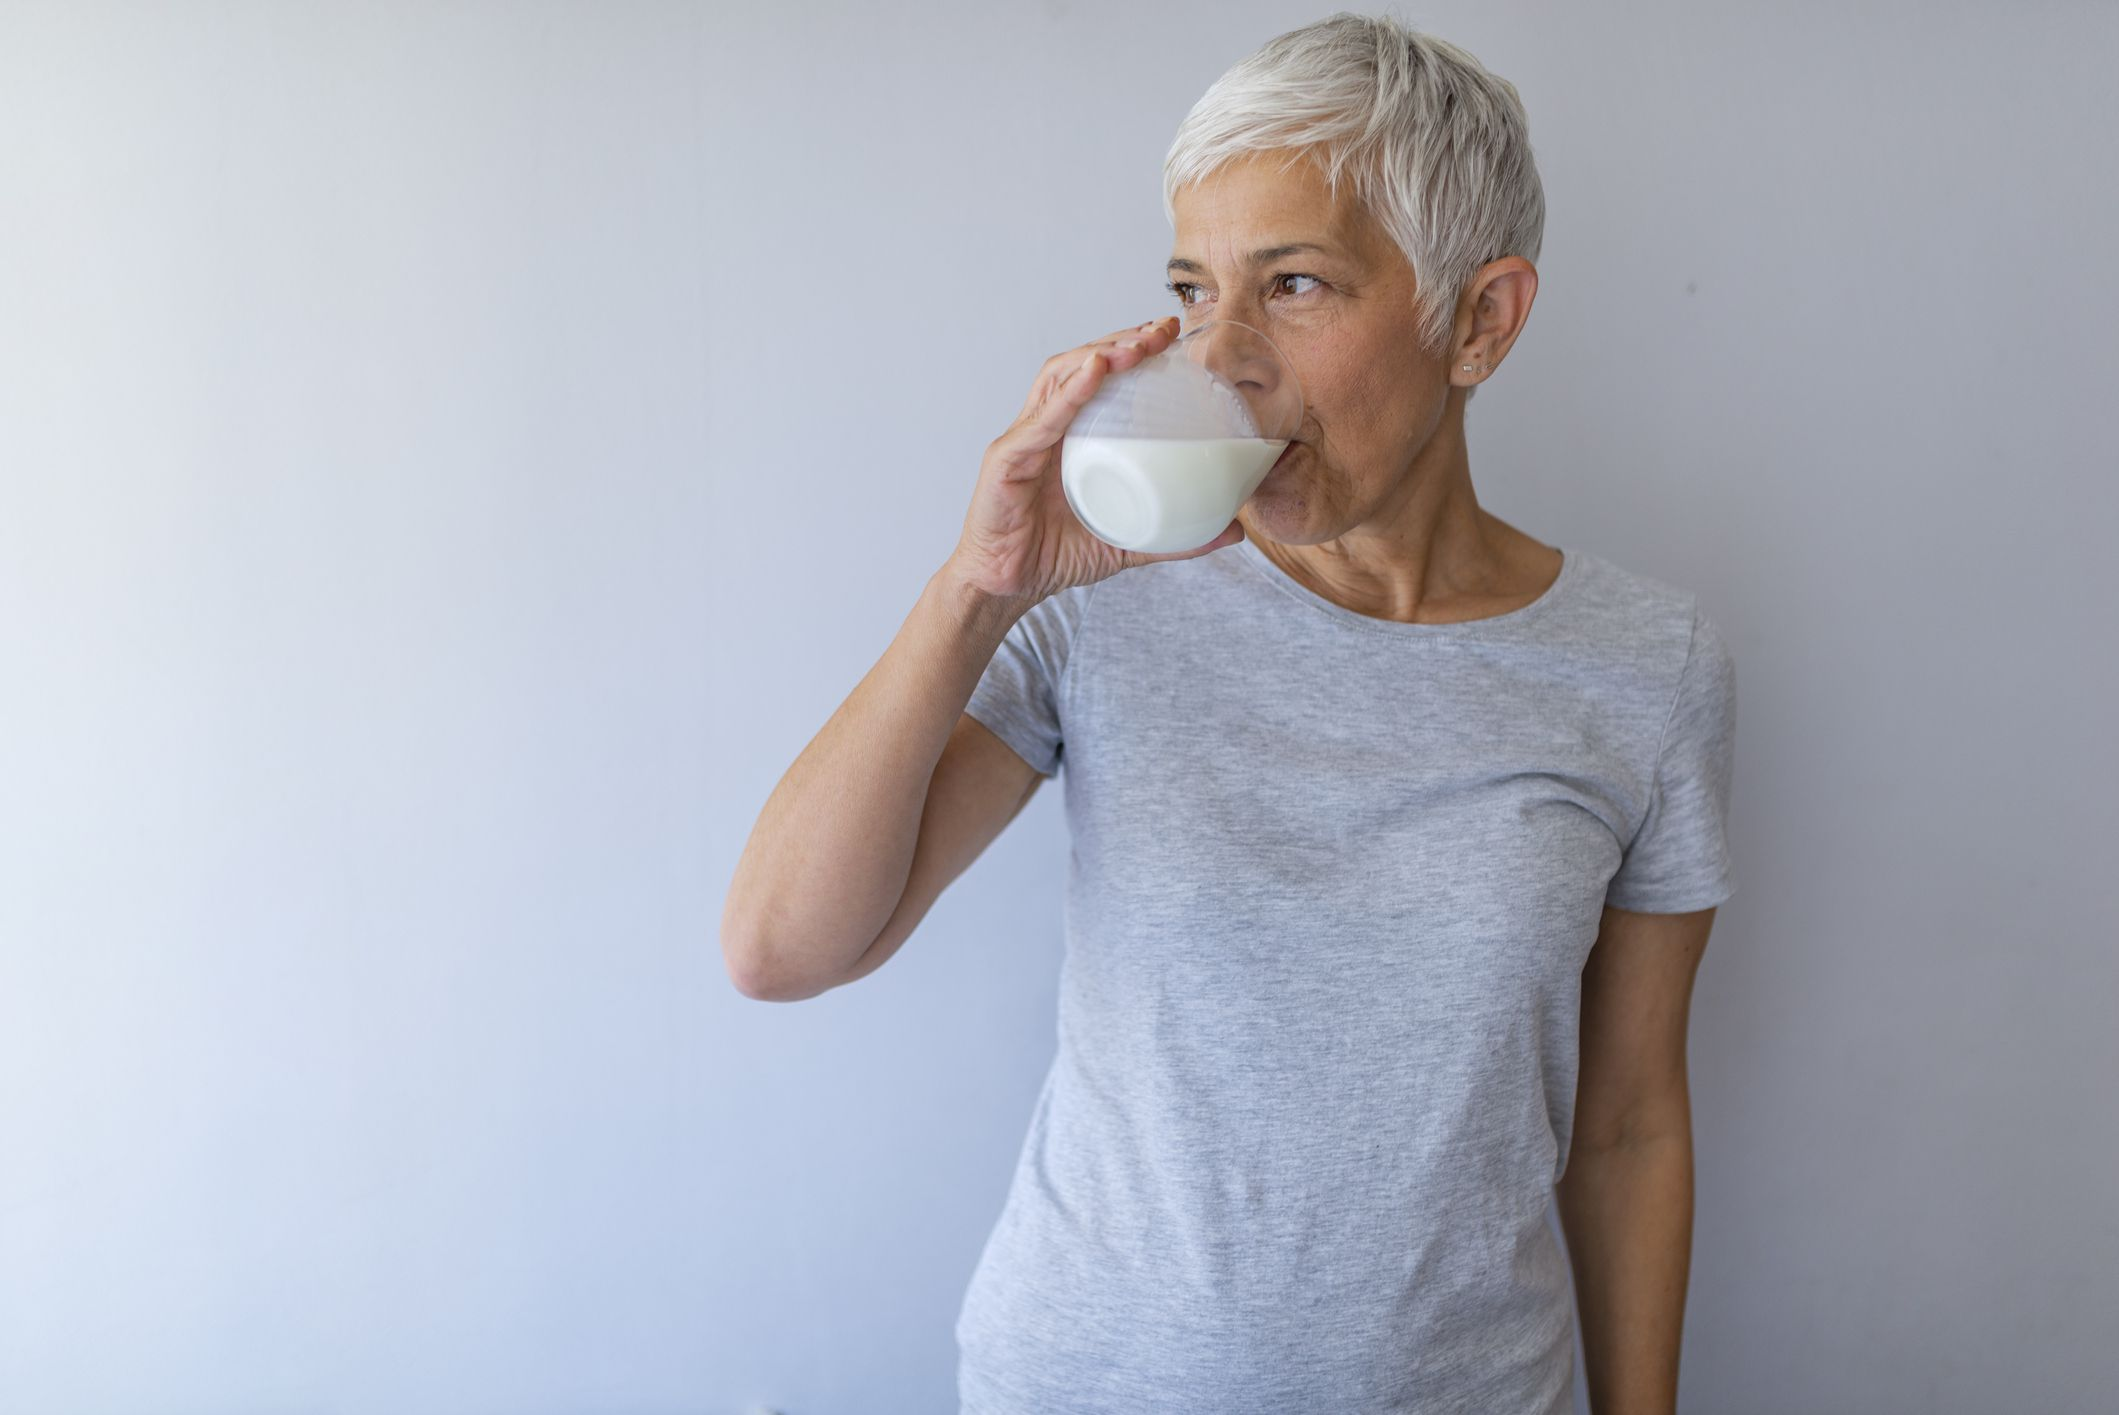 8 Foods to Support Your Bone Health